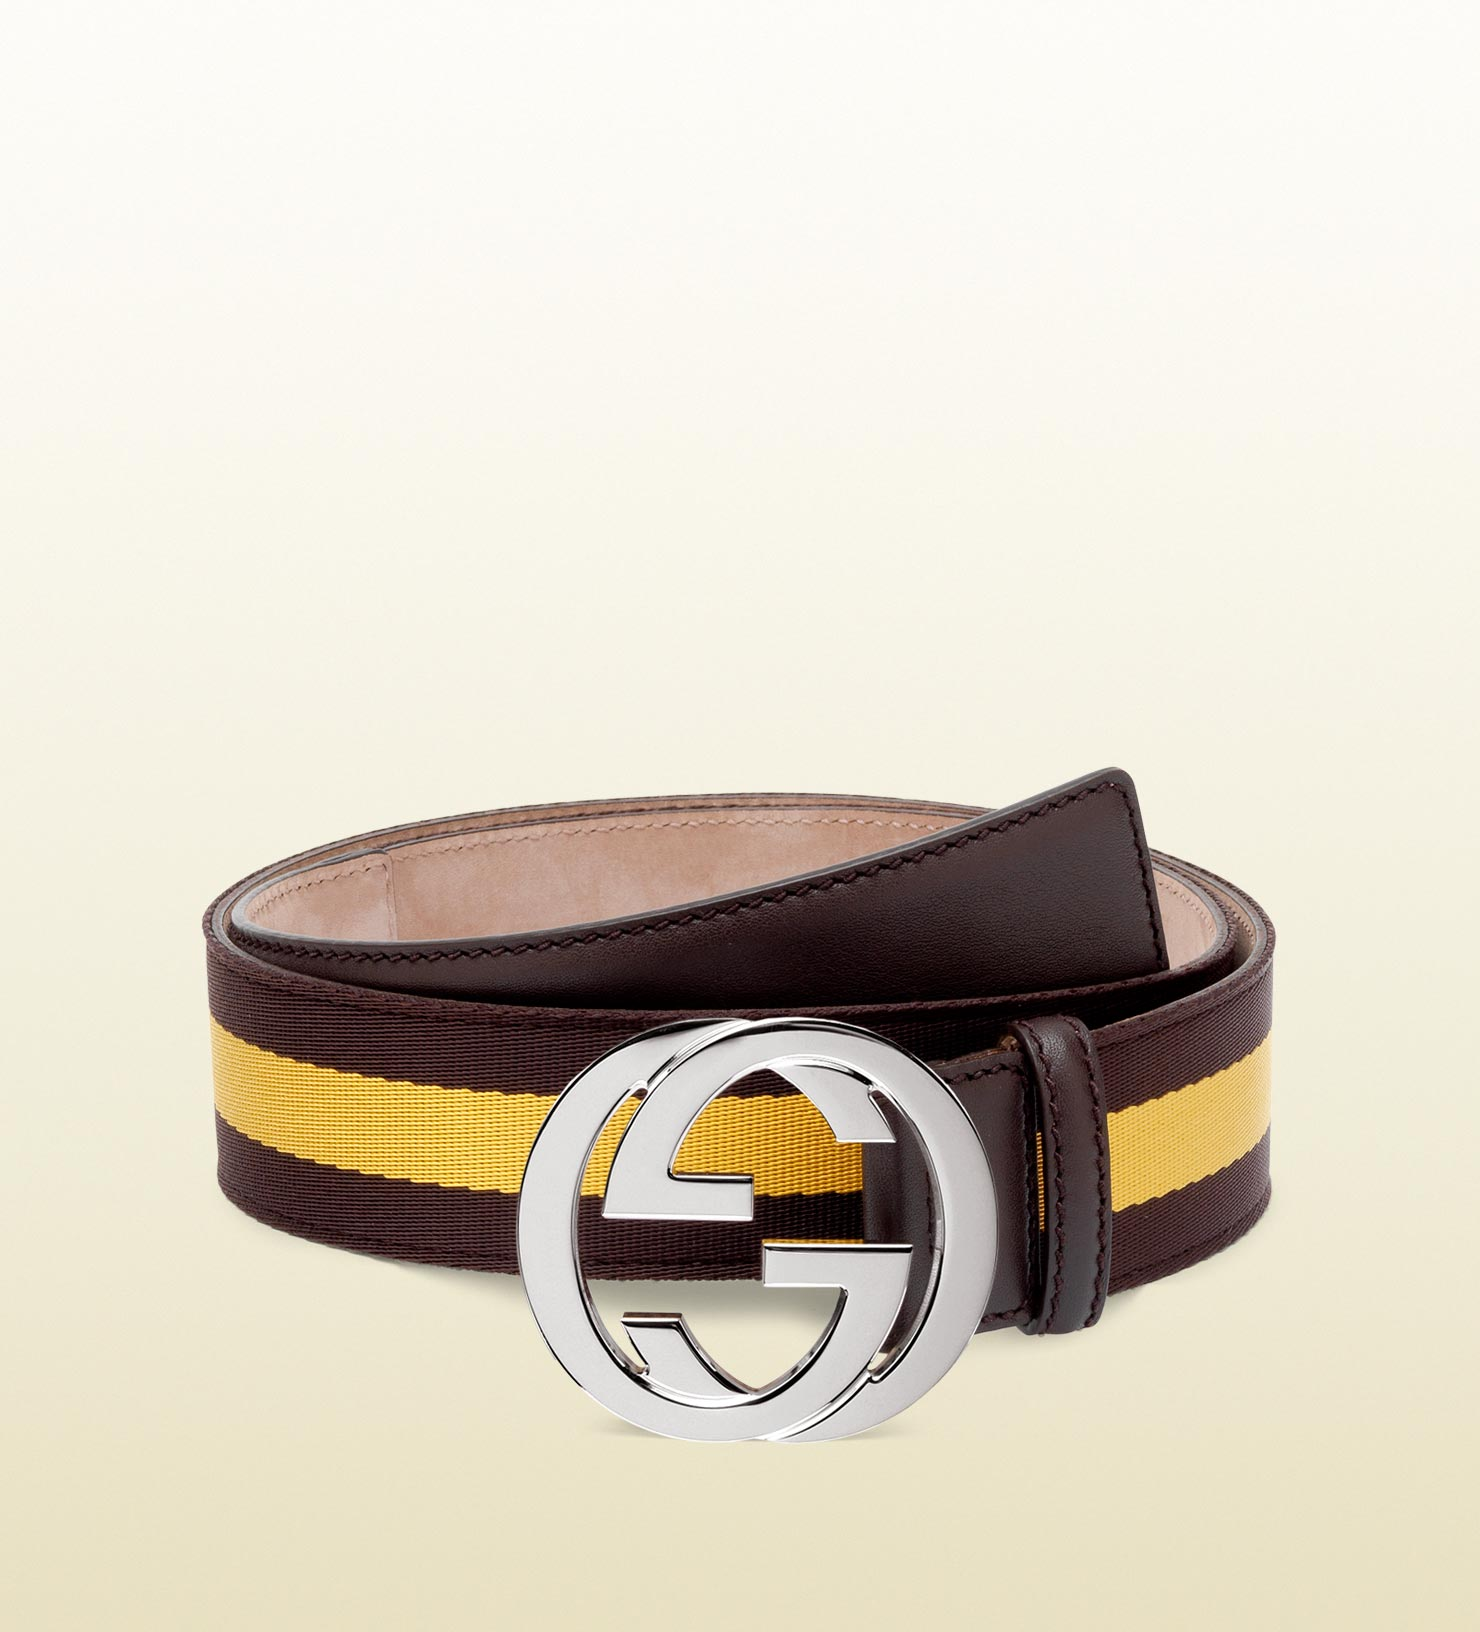 Double D Ring Belt Lyst Gucci Belt With Interlocking G